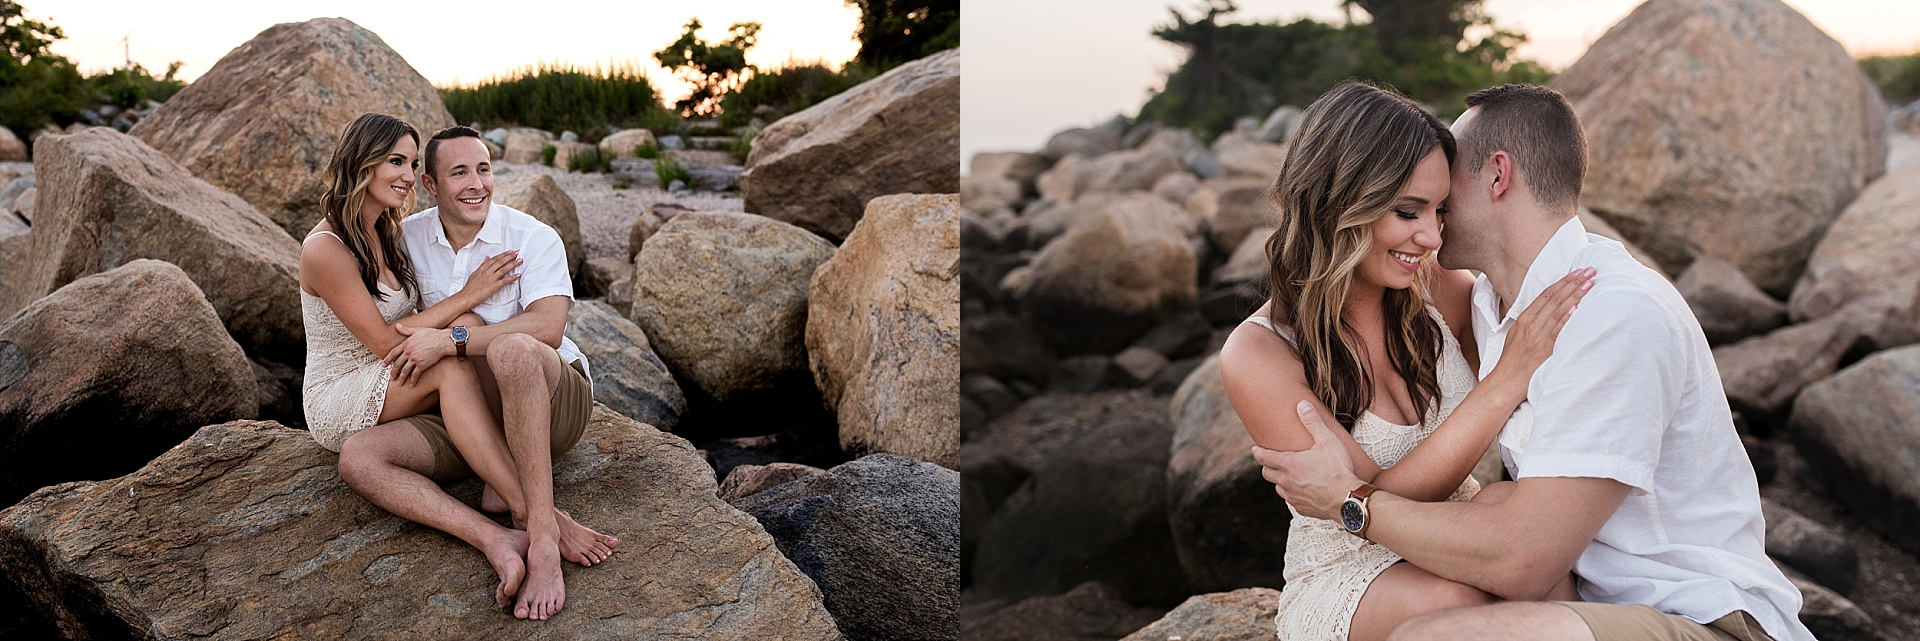 connecticut wedding photography at the shore